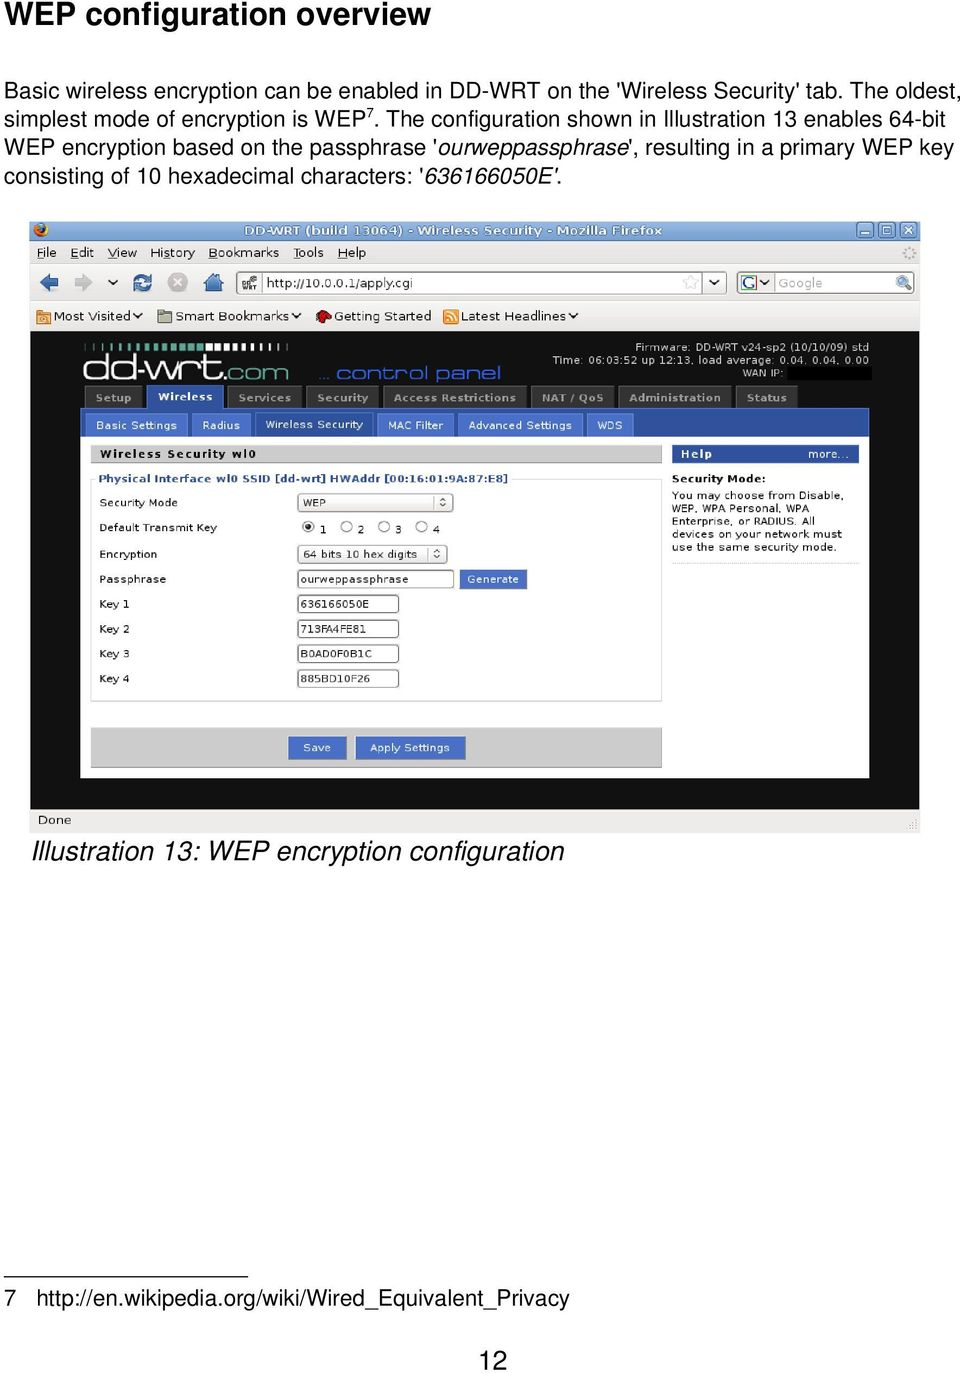 The configuration shown in Illustration 13 enables 64 bit WEP encryption based on the passphrase 'ourweppassphrase',